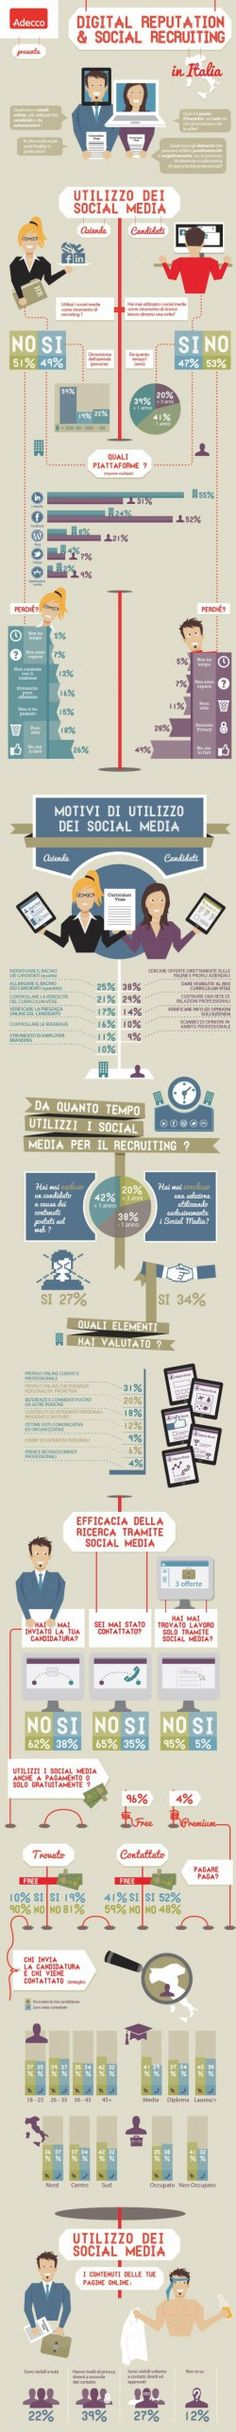 The digital reputation and the Social recruitment #hr #personalbranding #job #in #fb